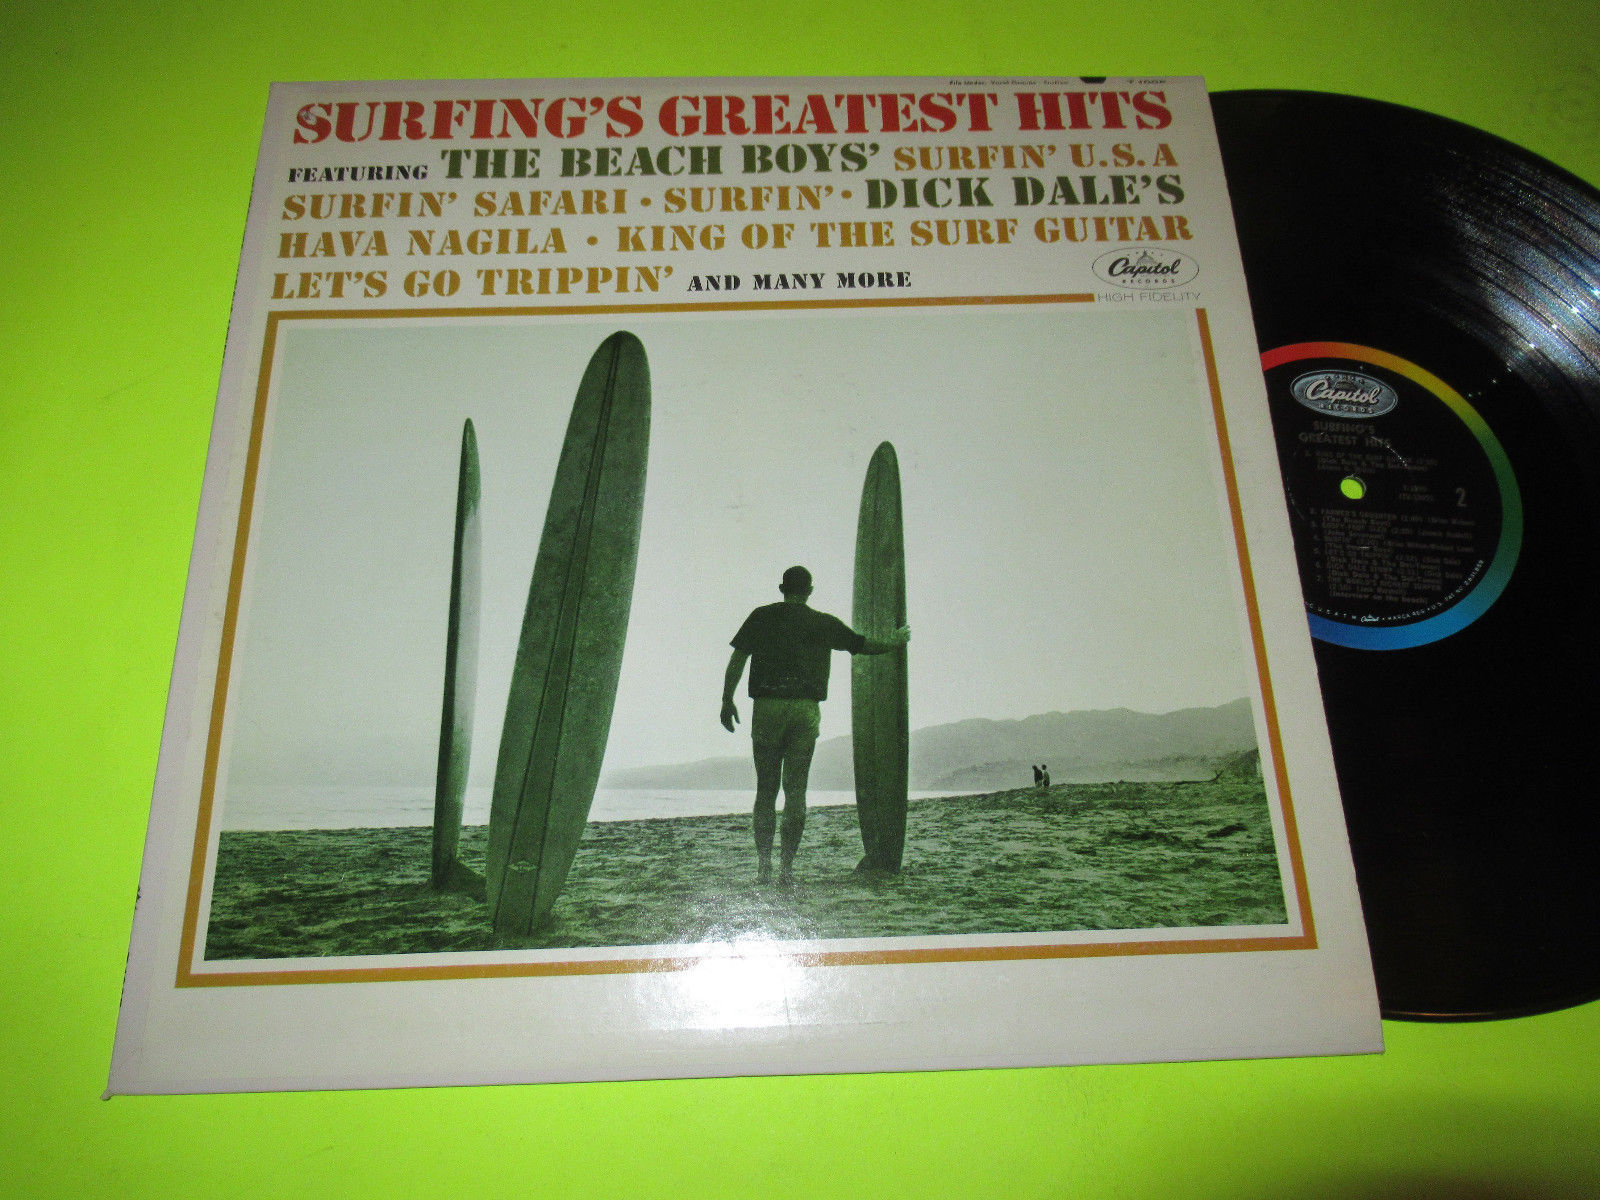 SURFINGS GREATEST HITS LP SURF ROCK DICK DALE BEACH BOYS FRANK STEIN DROP OUTS